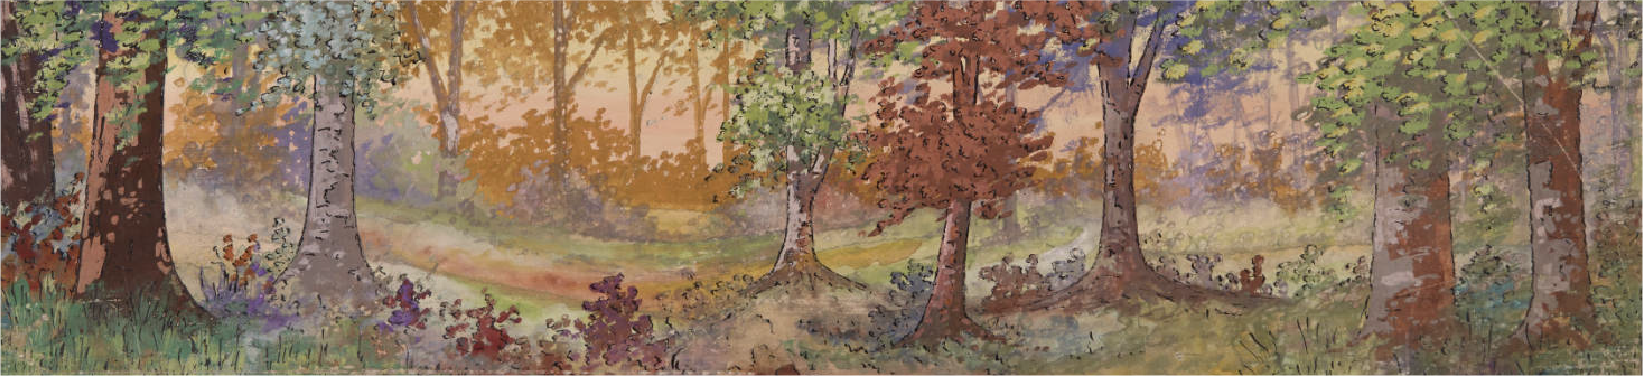 Exterior landscape of a forest. By Northwest Studios, Inc. Part of the Twin City Scenic Company Collection, University of Minnesota Performing Arts Archives.